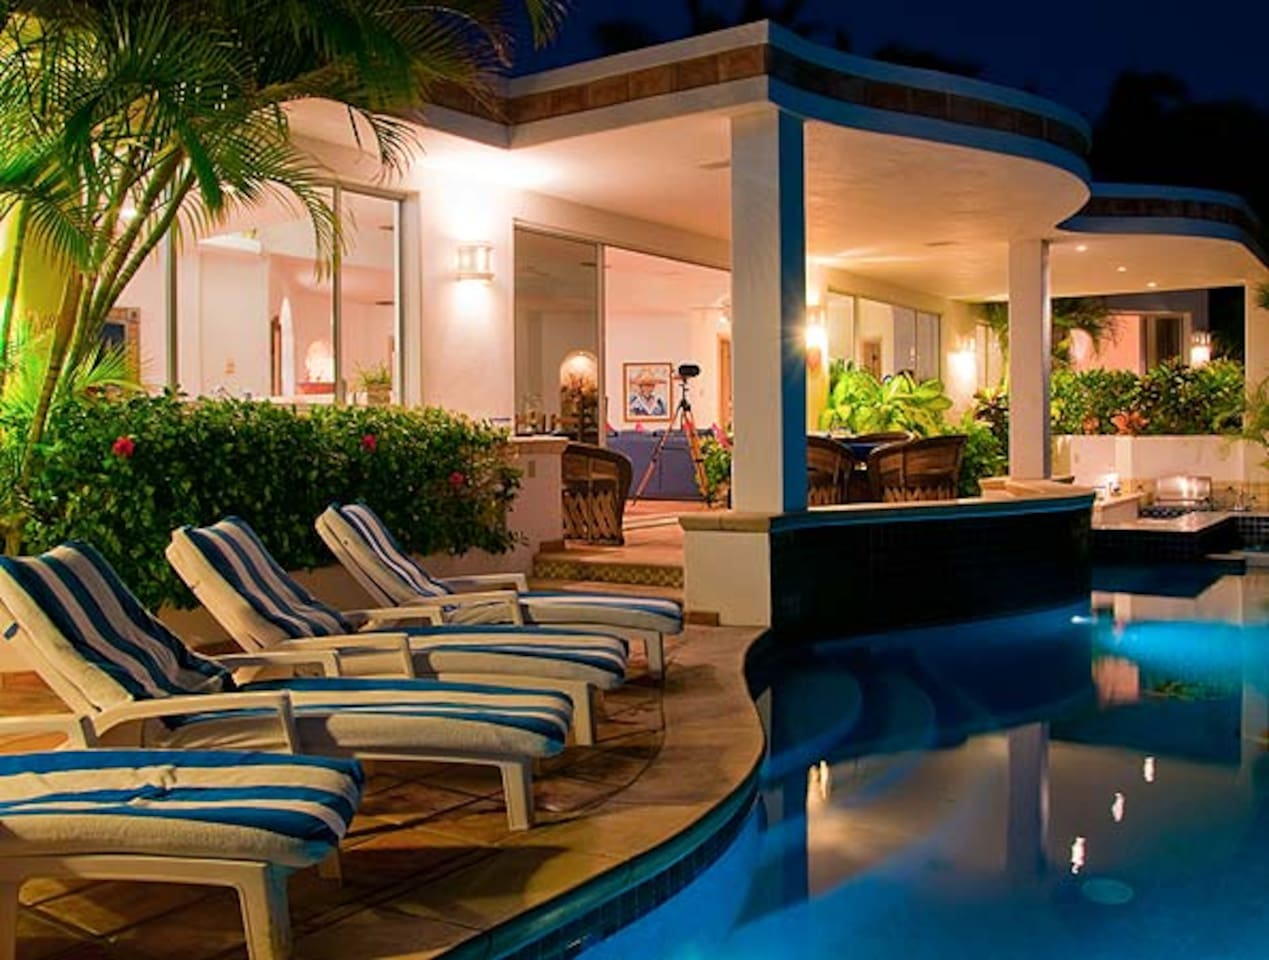 Outside terrace and covered patio overlooking the infinity pool.